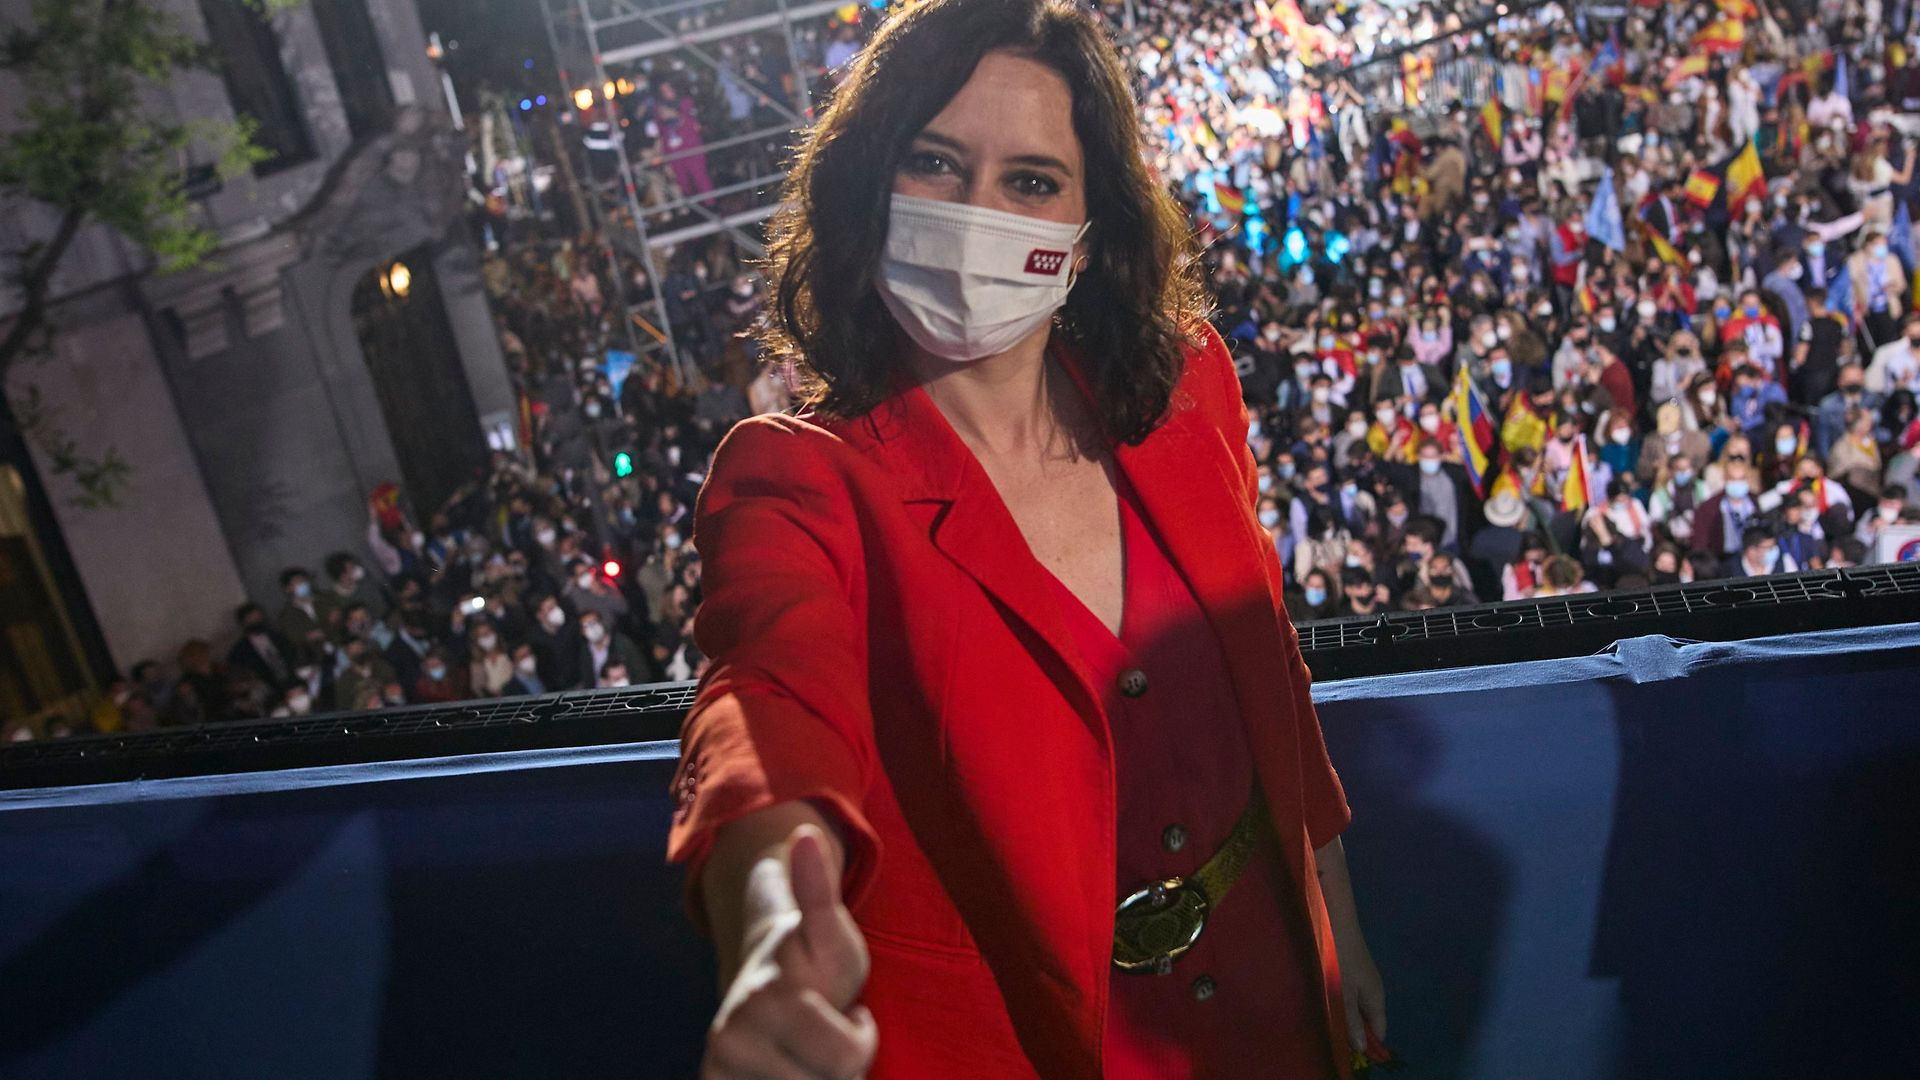 Isabel Diaz Ayuso on the balcony of her party headquarters on the night of the recent election - Credit: Europa Press via Getty Images